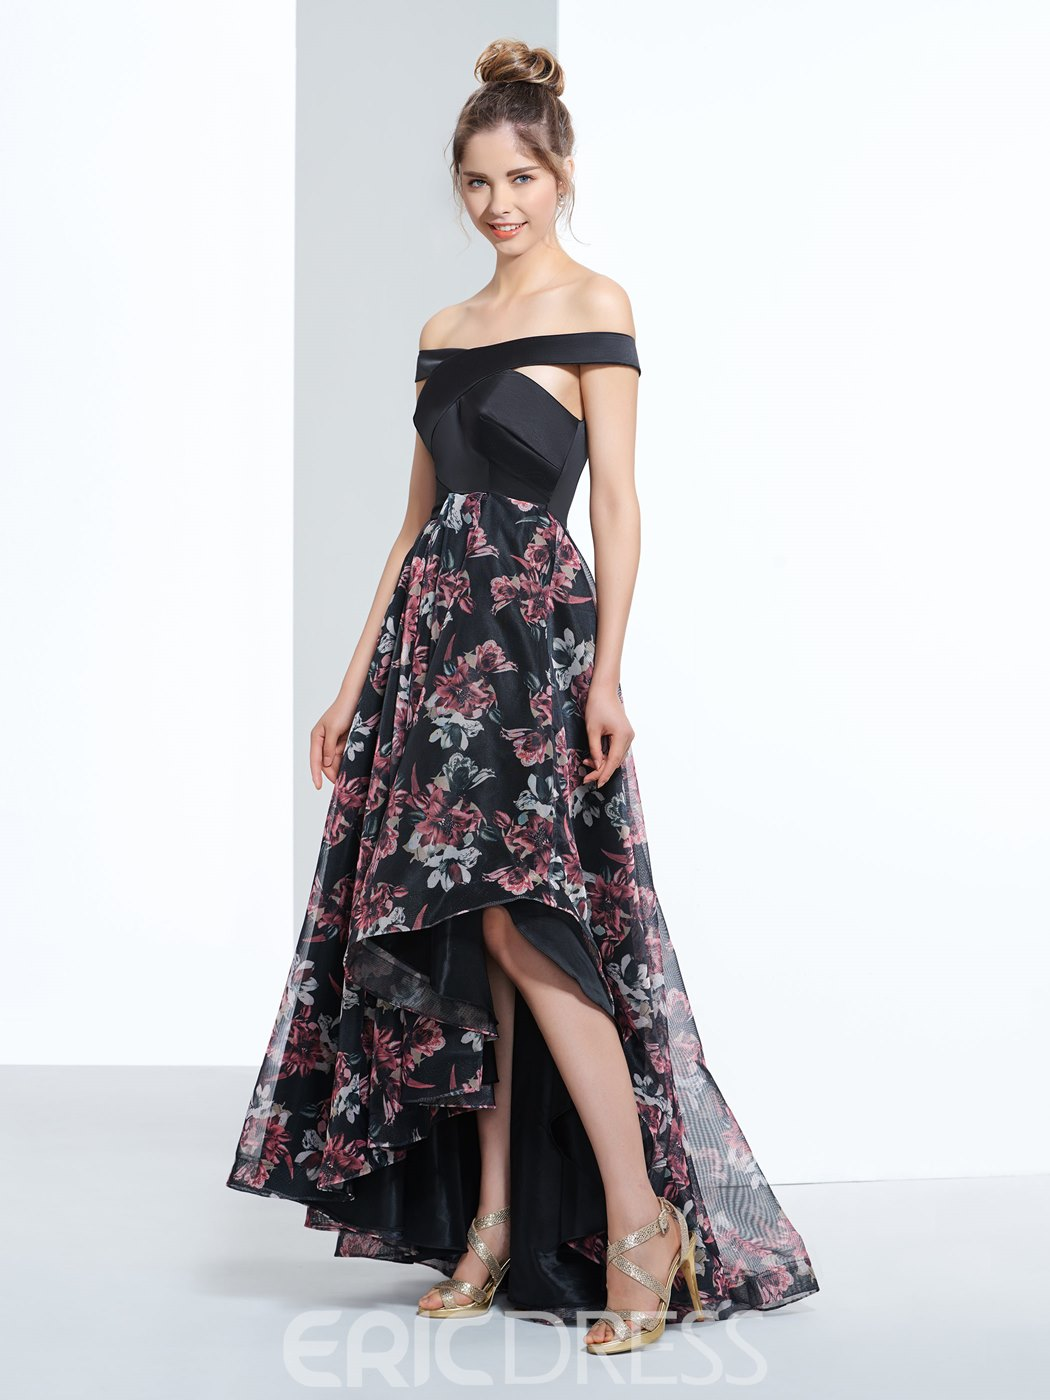 Ericdress a-ligne Off-the-Shoulder mancherons imprimé robe de bal